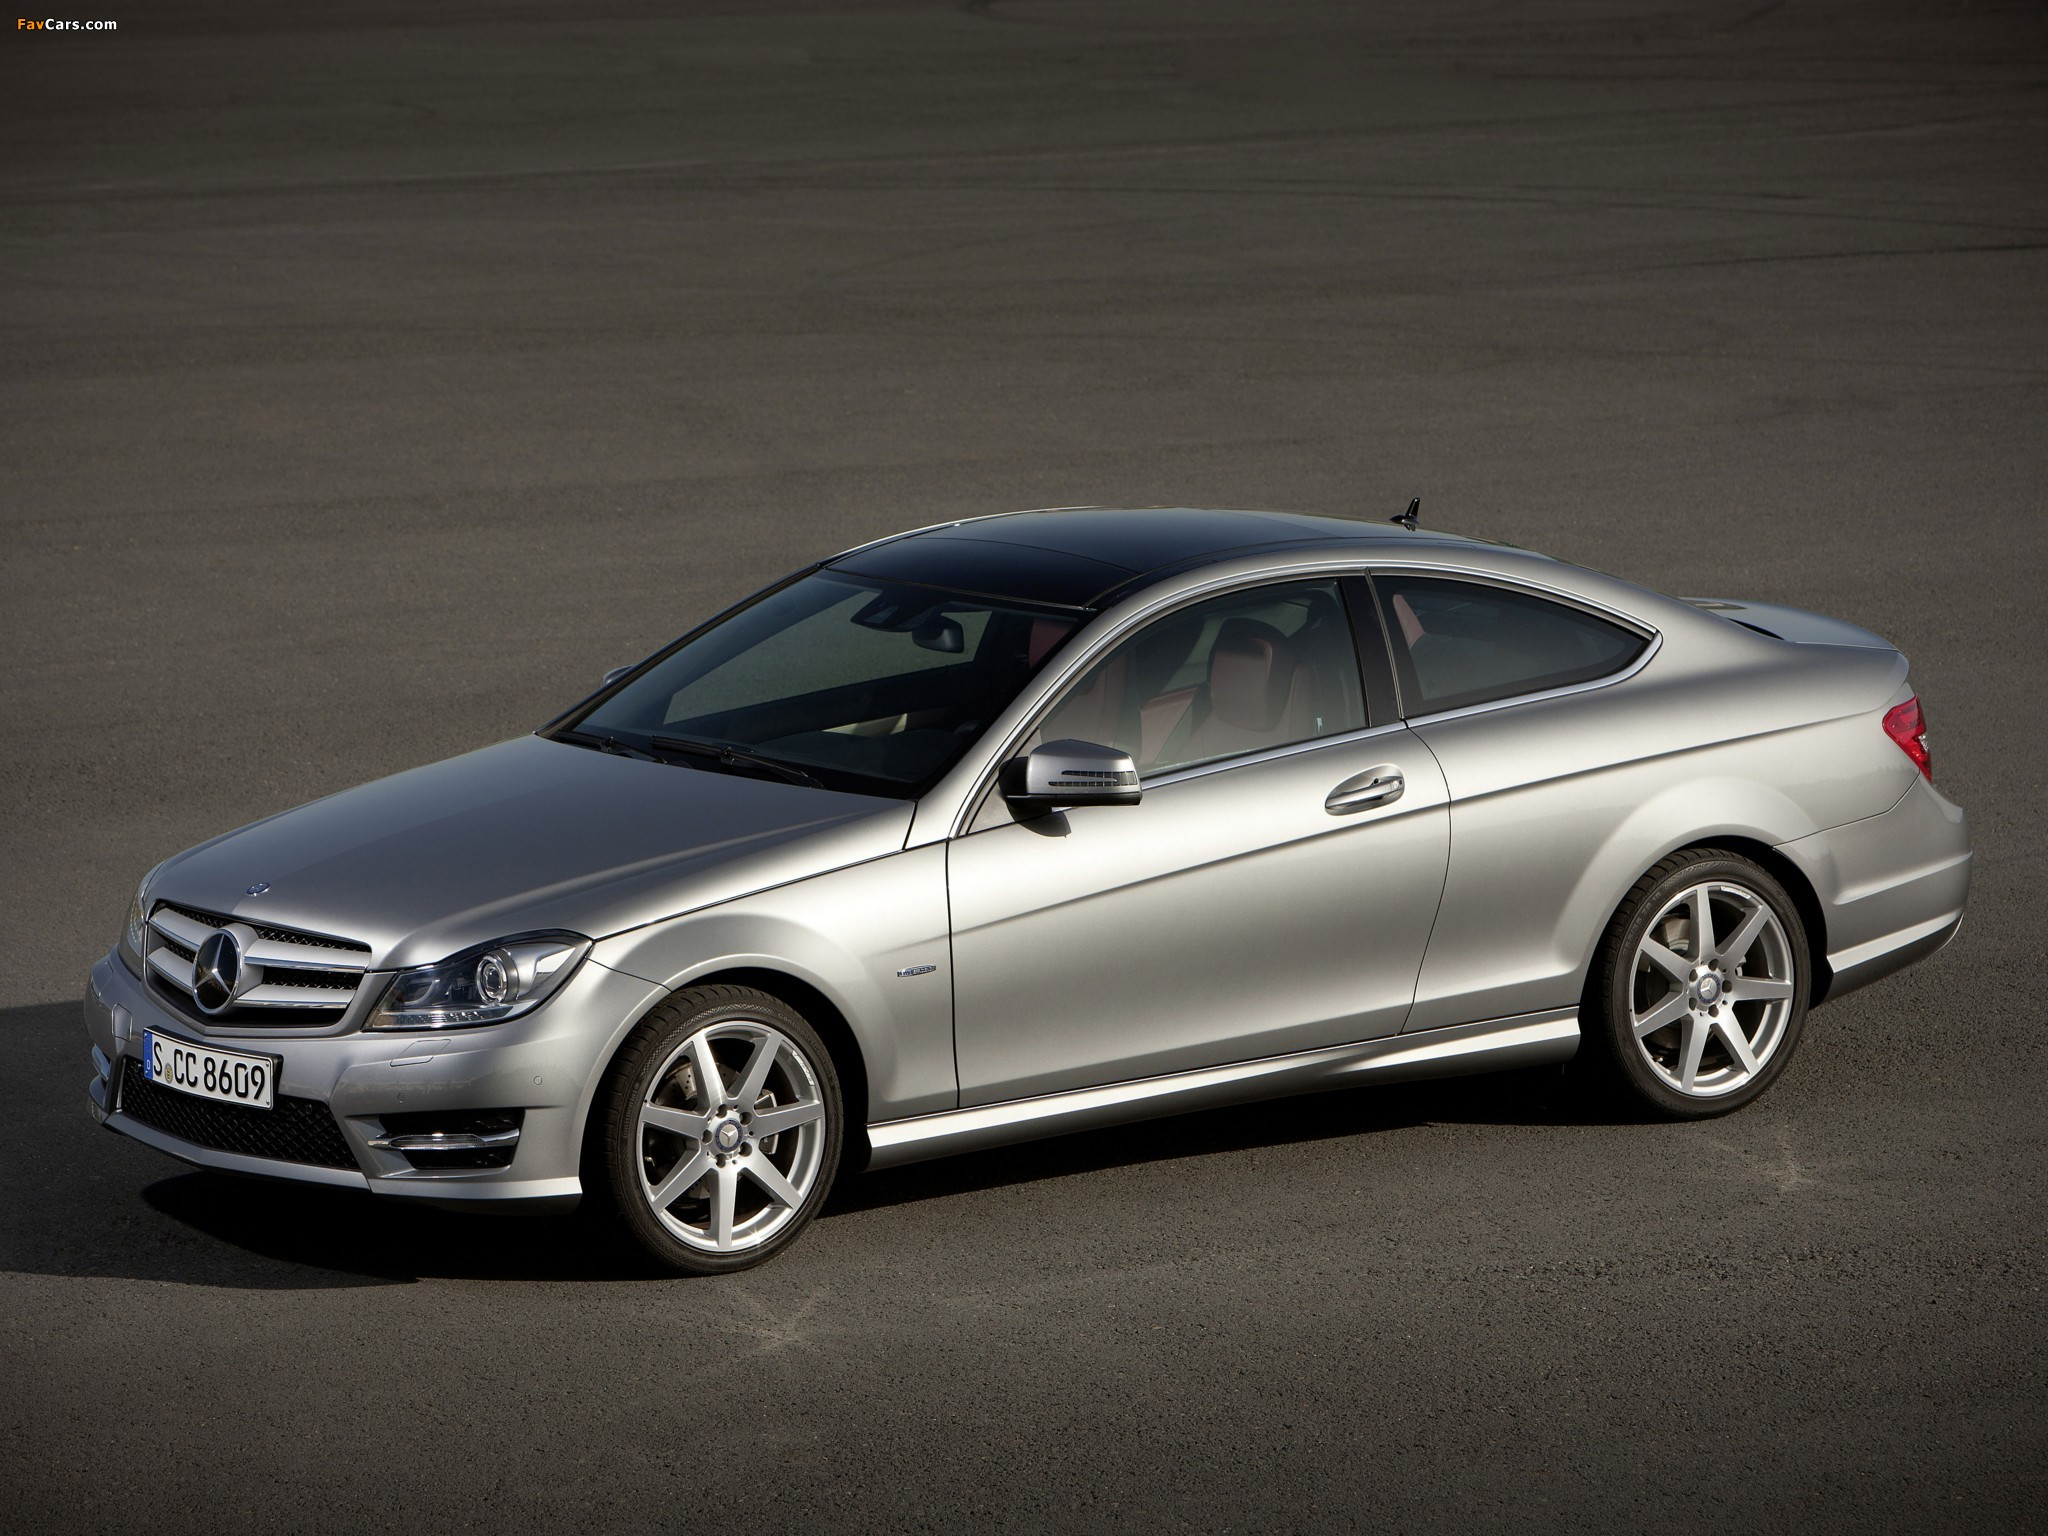 Mercedes-Benz C 250 Coupe (C204) 2011 wallpapers (2048 x 1536)